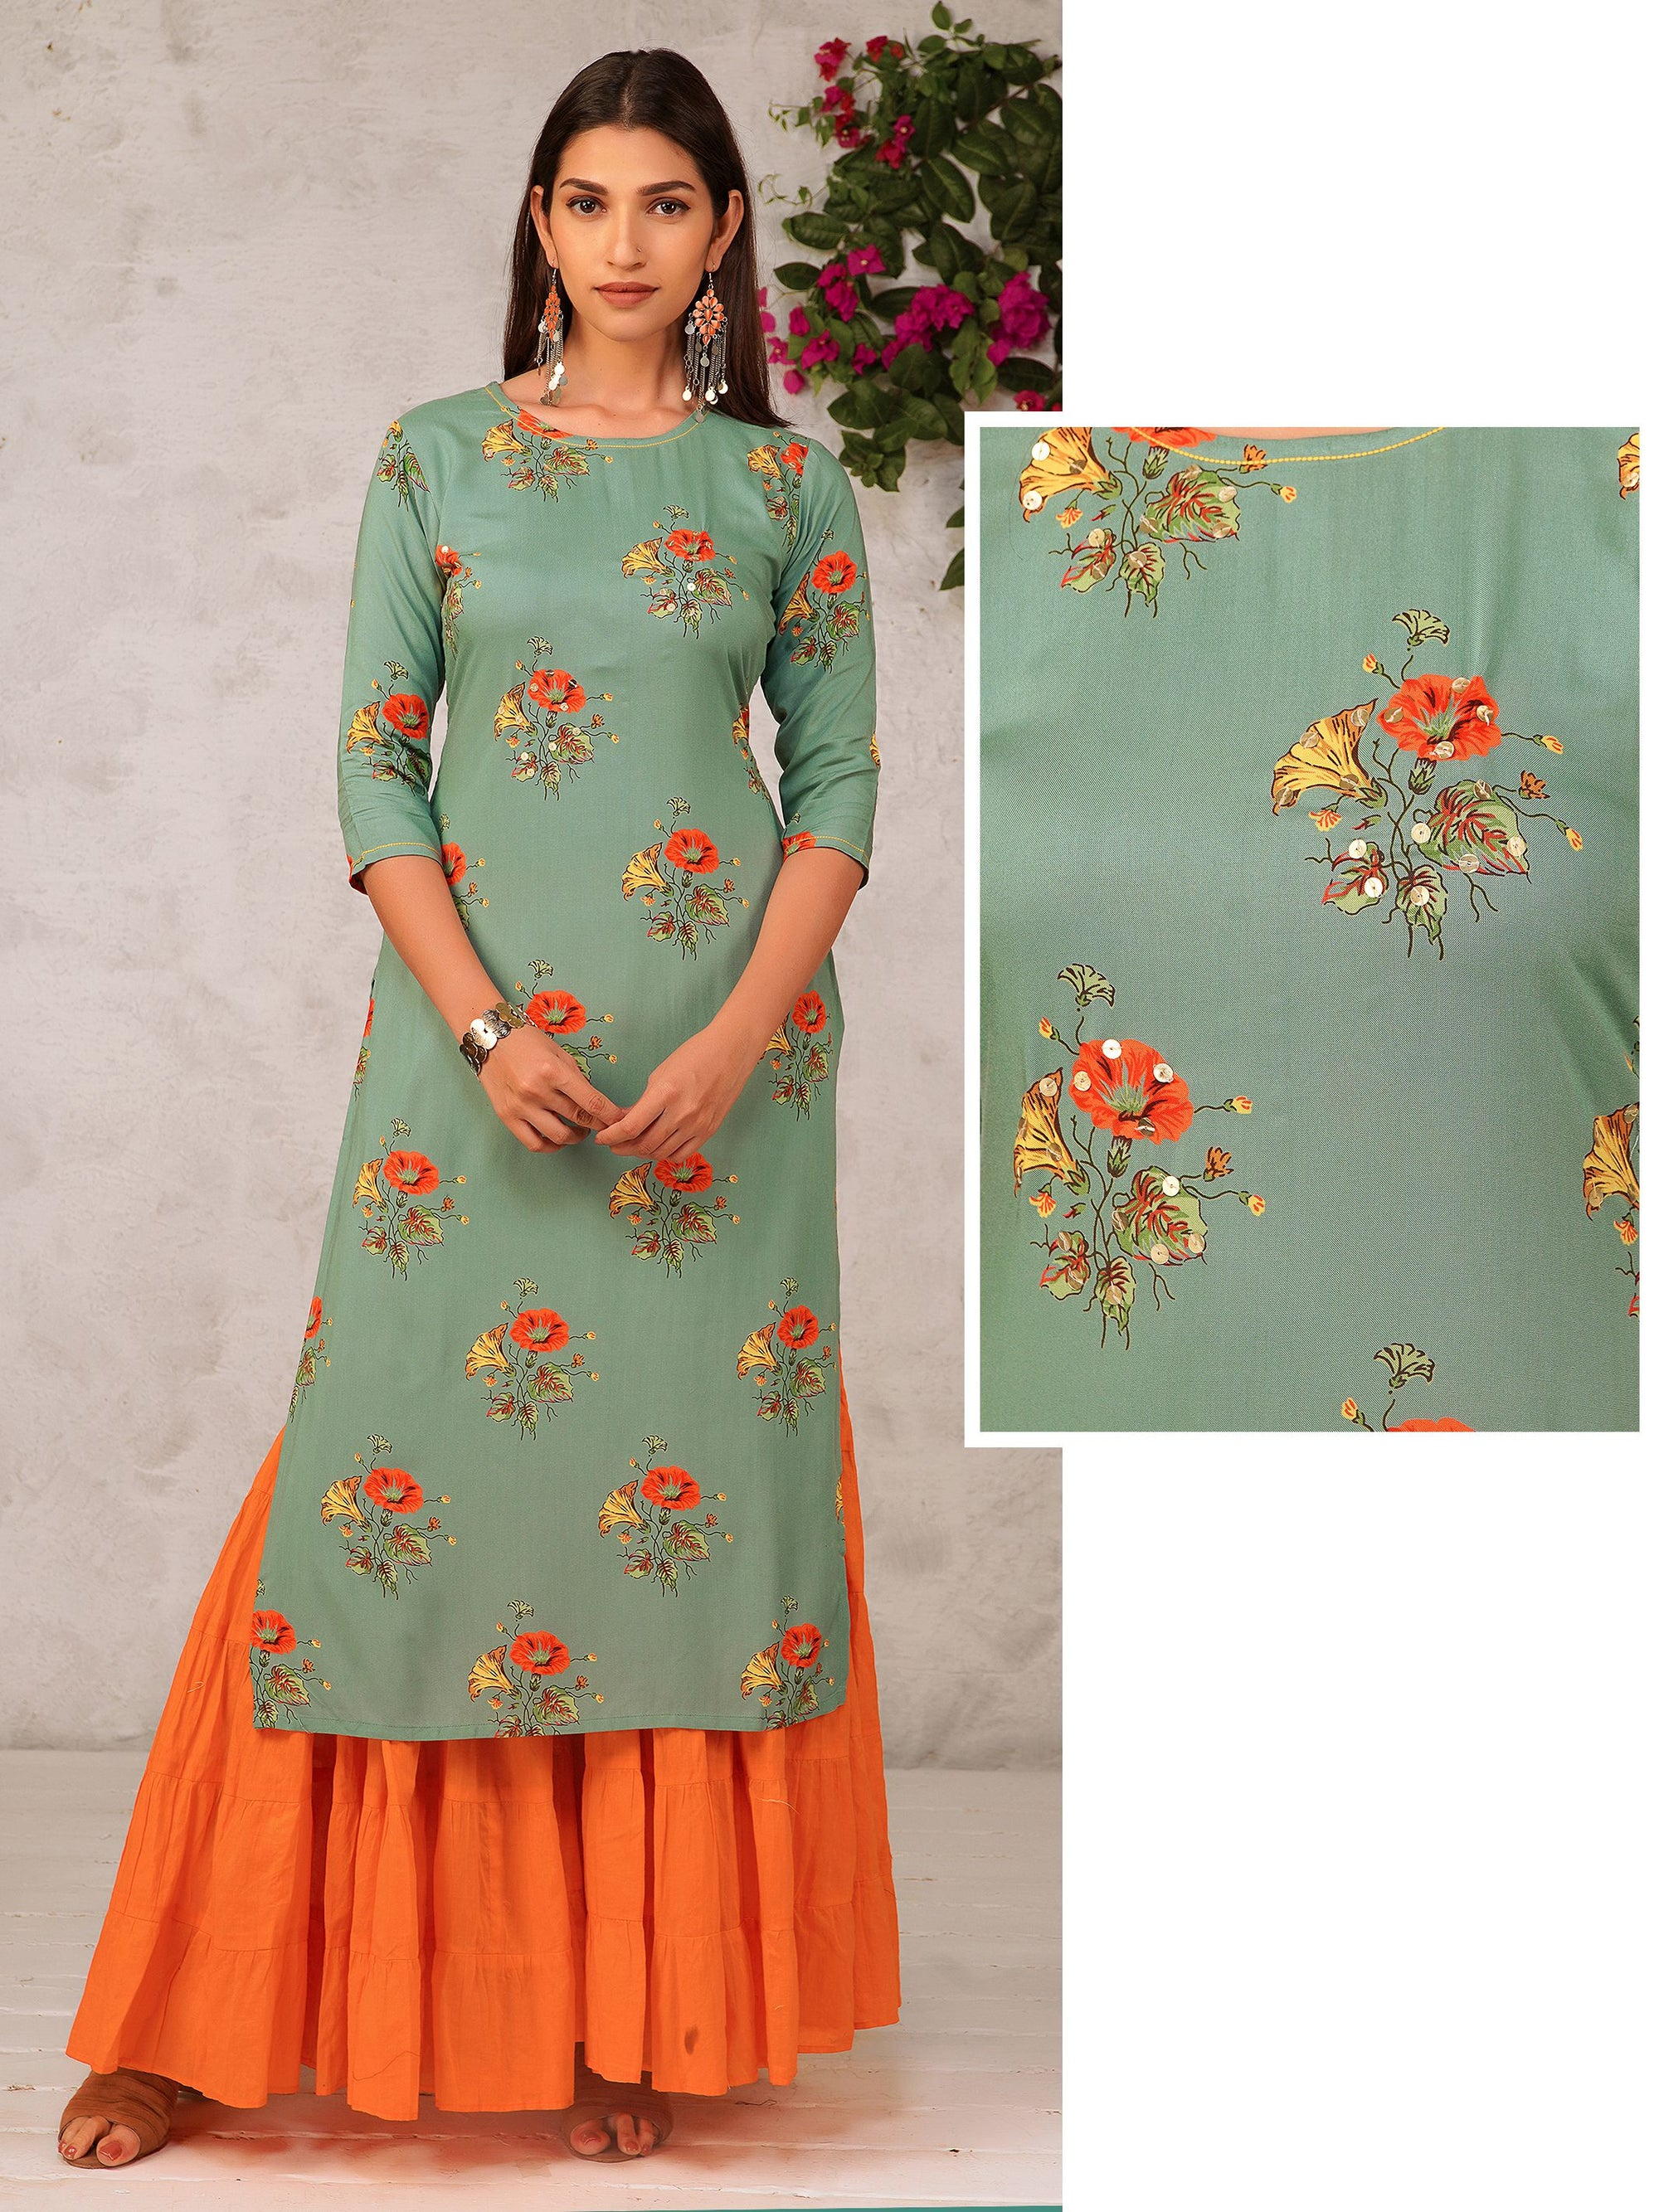 Floral Kurta With Sequins